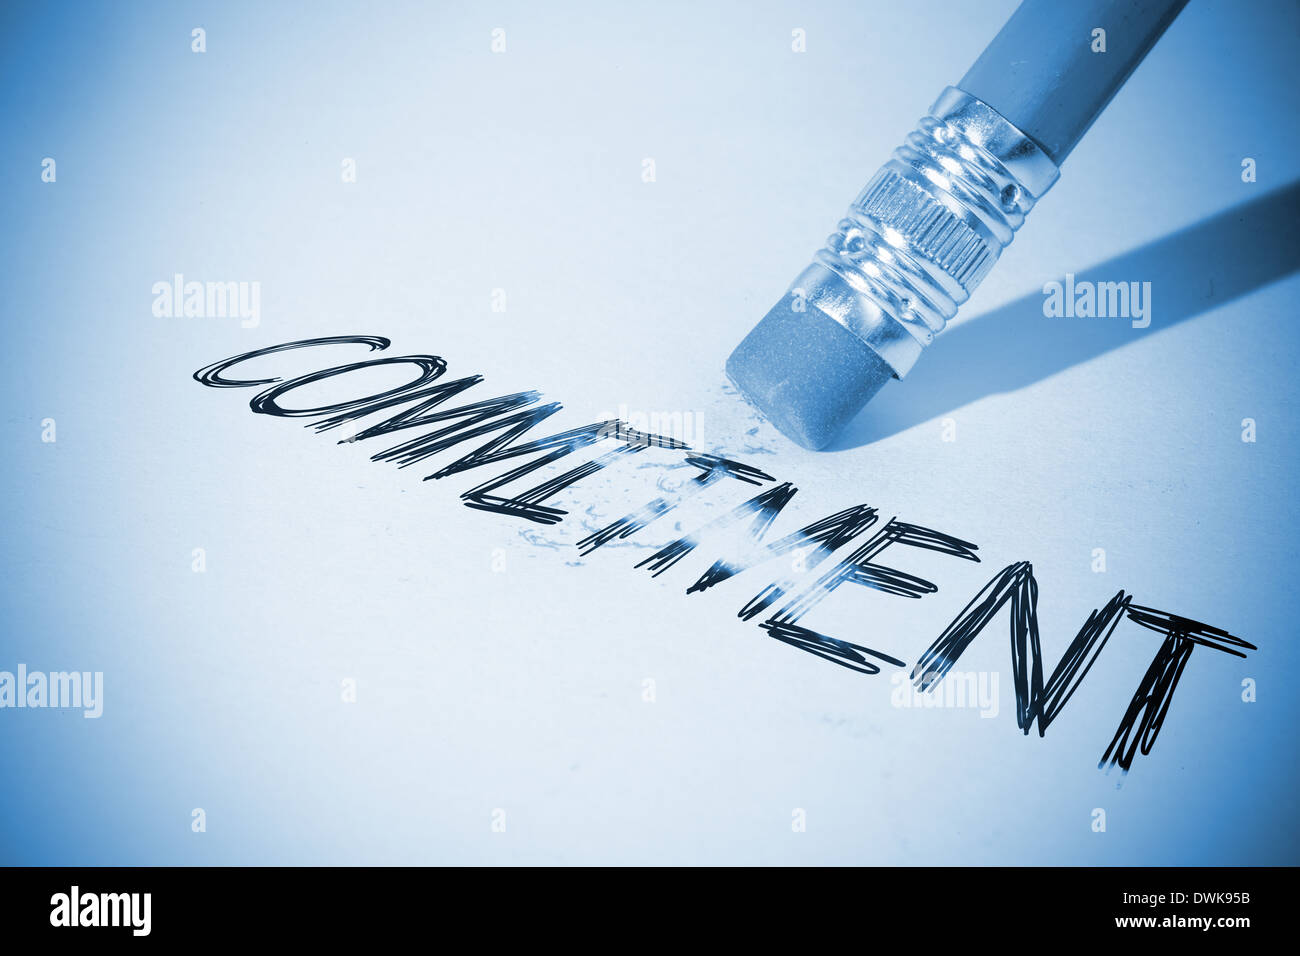 Pencil erasing the word Commitment - Stock Image